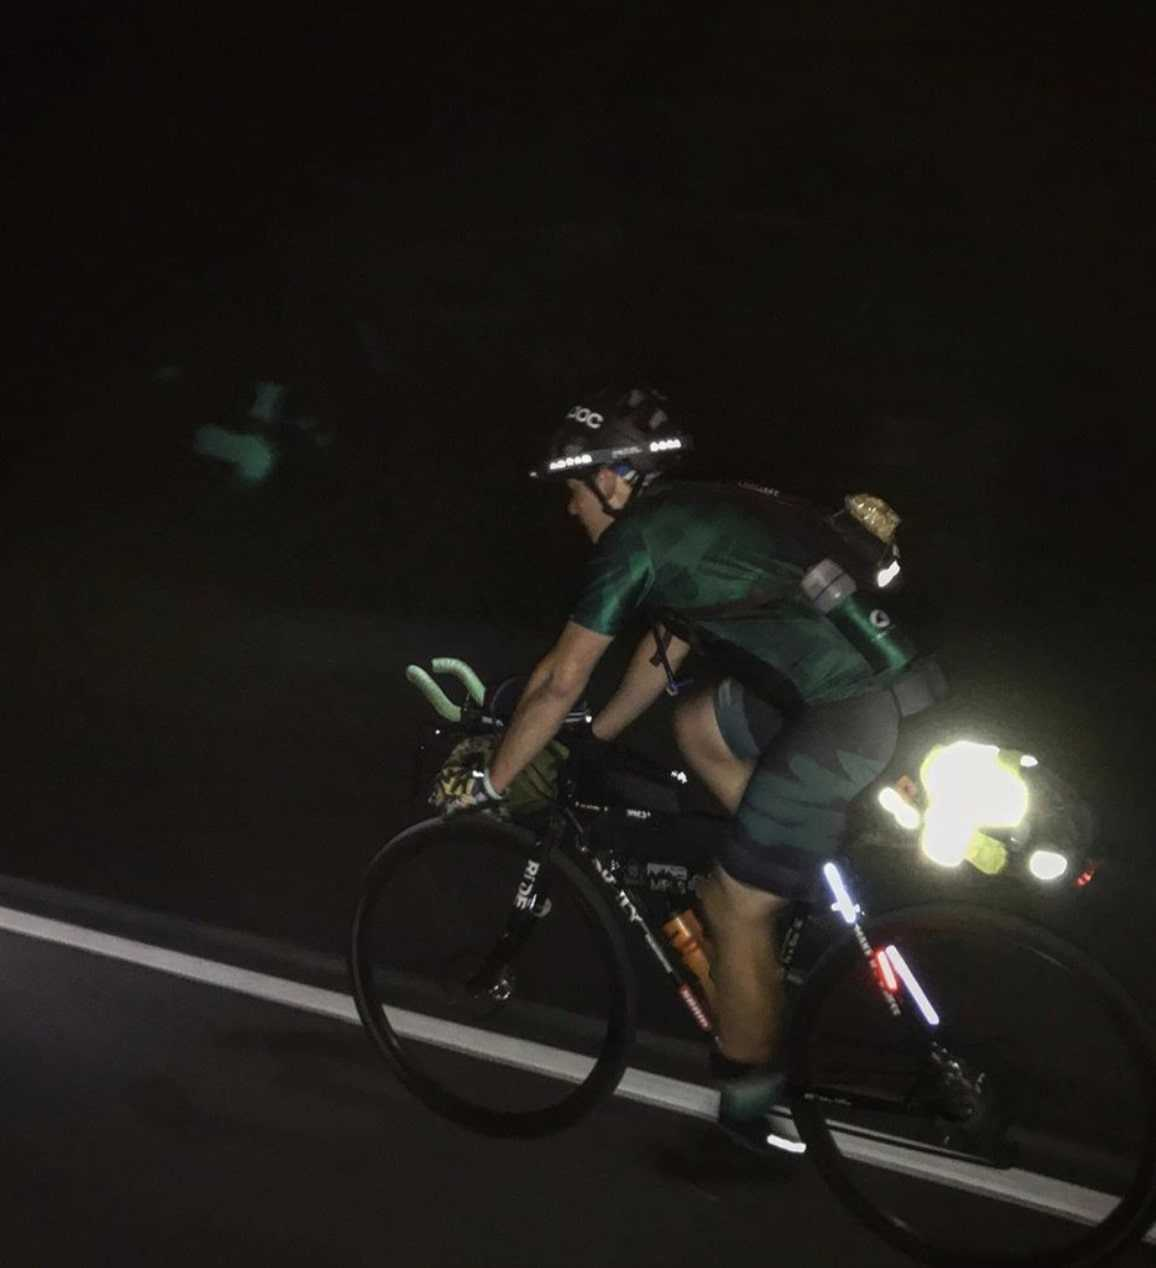 Left side view of a cyclist riding a bike with a reflective rear gear bag pedals in the dark down a paved roadway